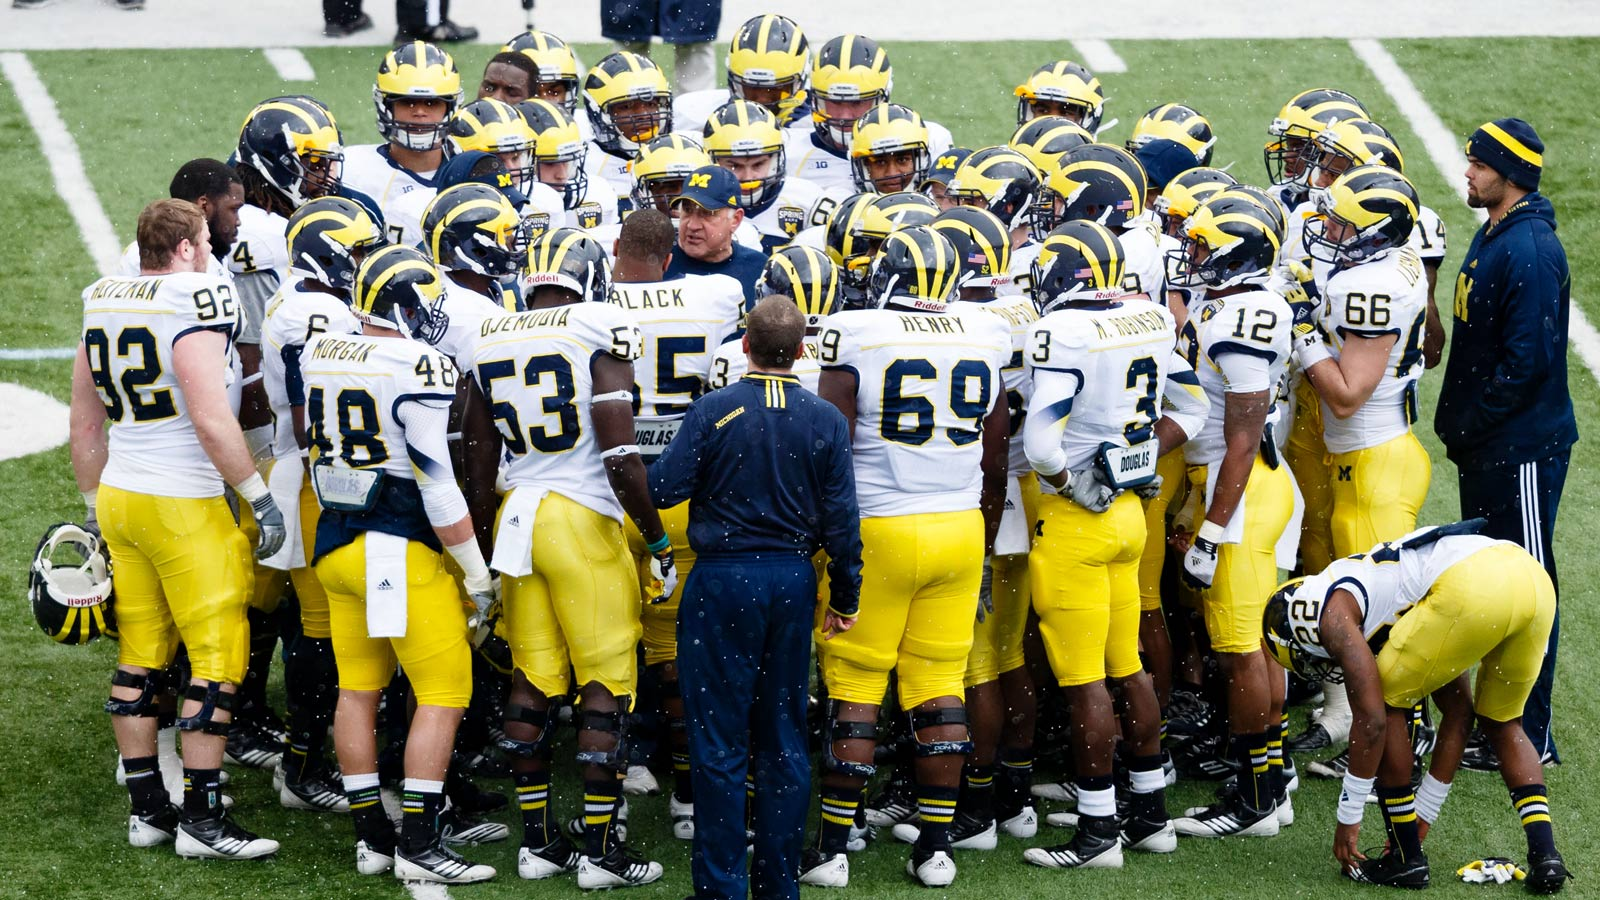 The official website for the University of Michigan Wolverines athletics